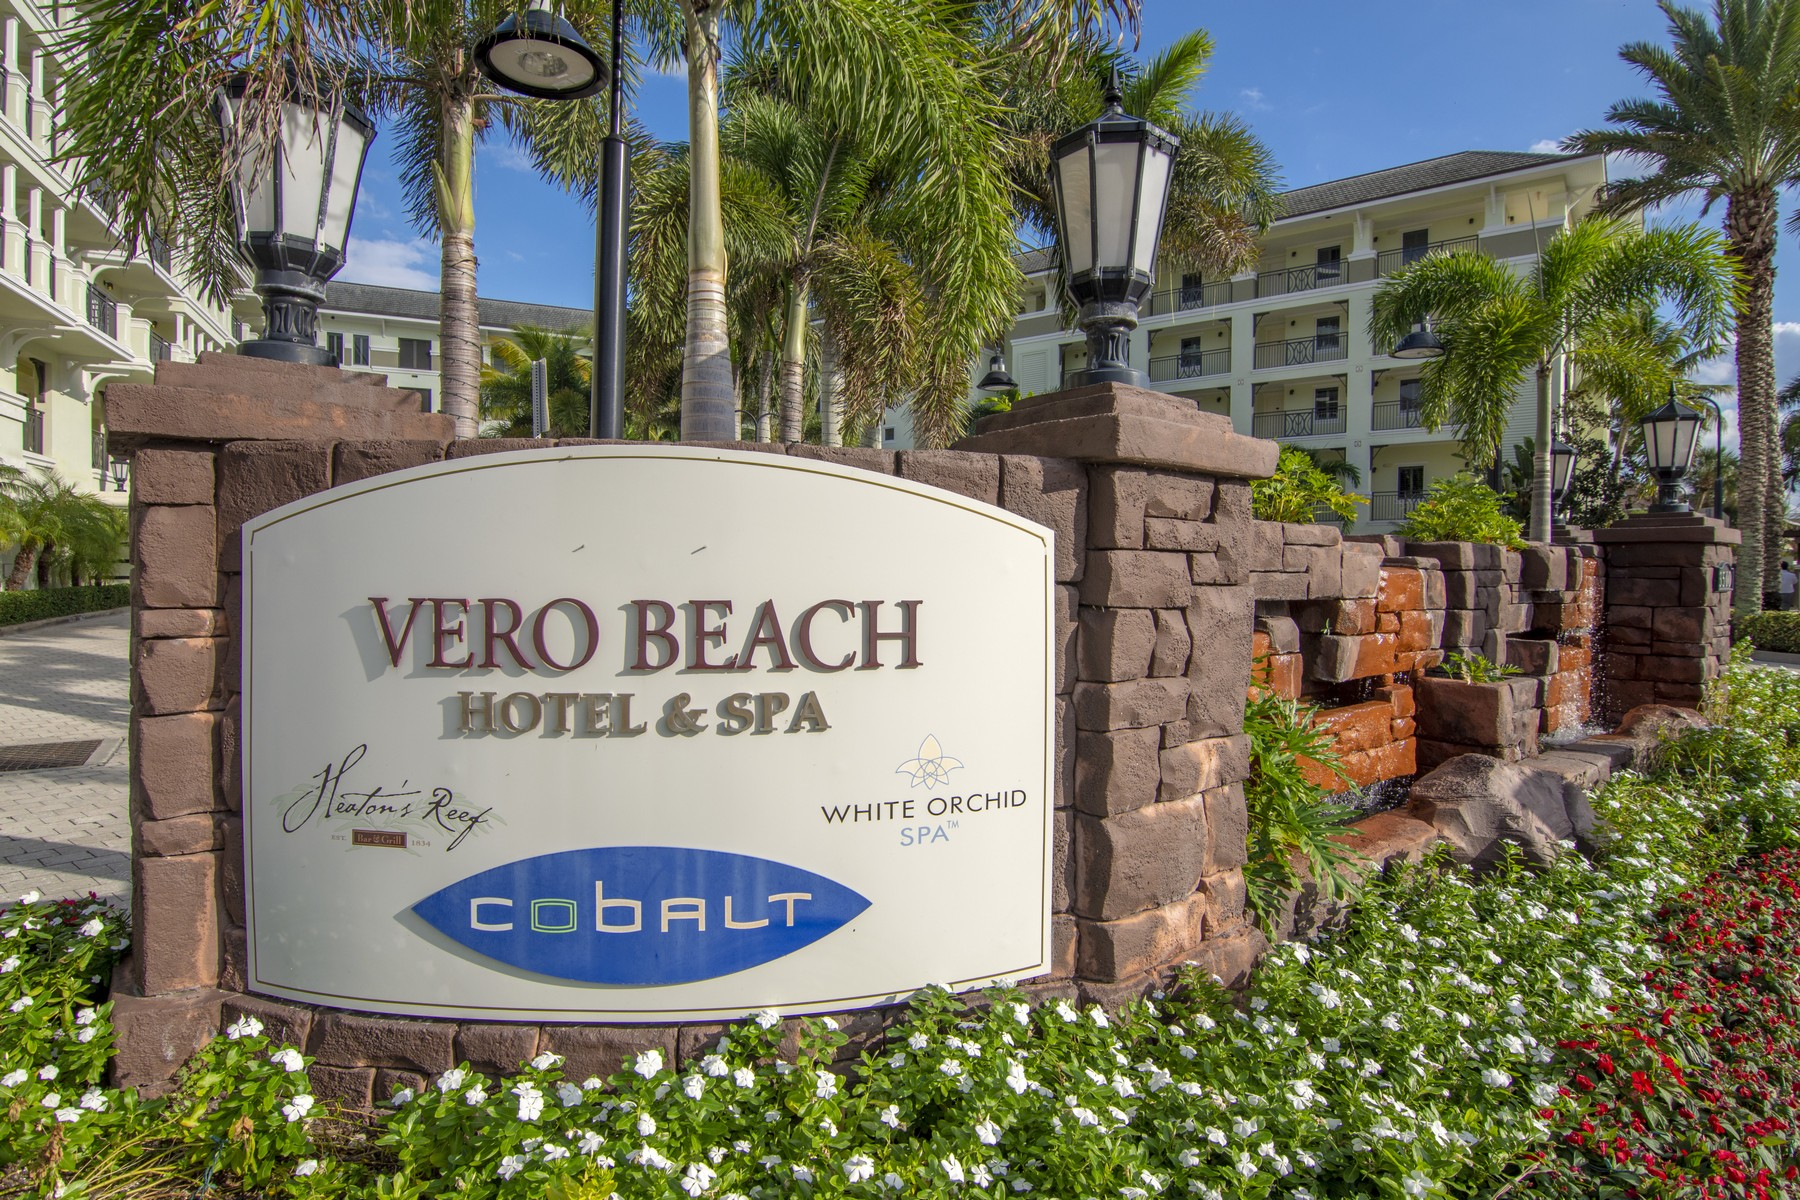 Condominium for Sale at Fully Furnished With Full Kitchen and Three Balconies! 3500 Ocean Drive #230 Vero Beach, Florida 32963 United States